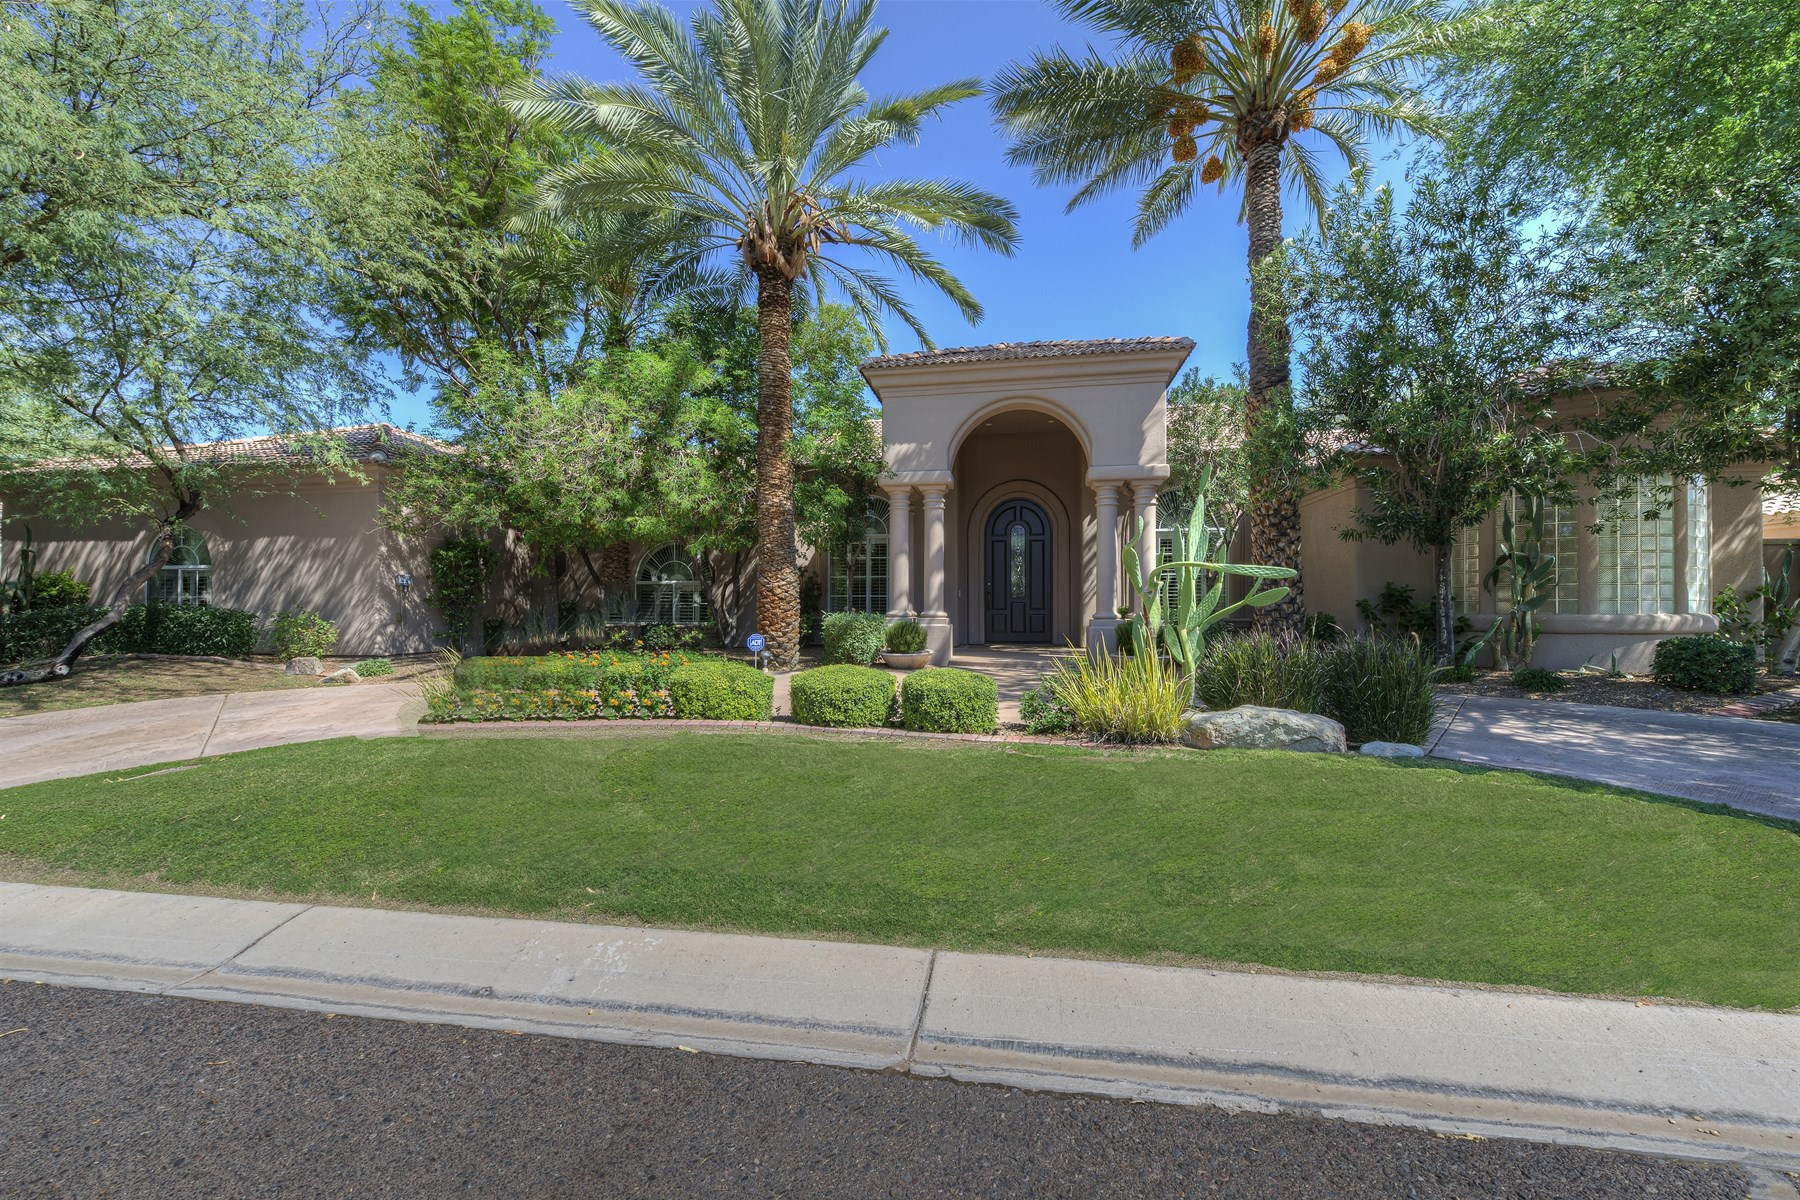 Single Family Home for Sale at Much sought after LaCienega gated community. 9664 E LAUREL LN Scottsdale, Arizona 85260 United States